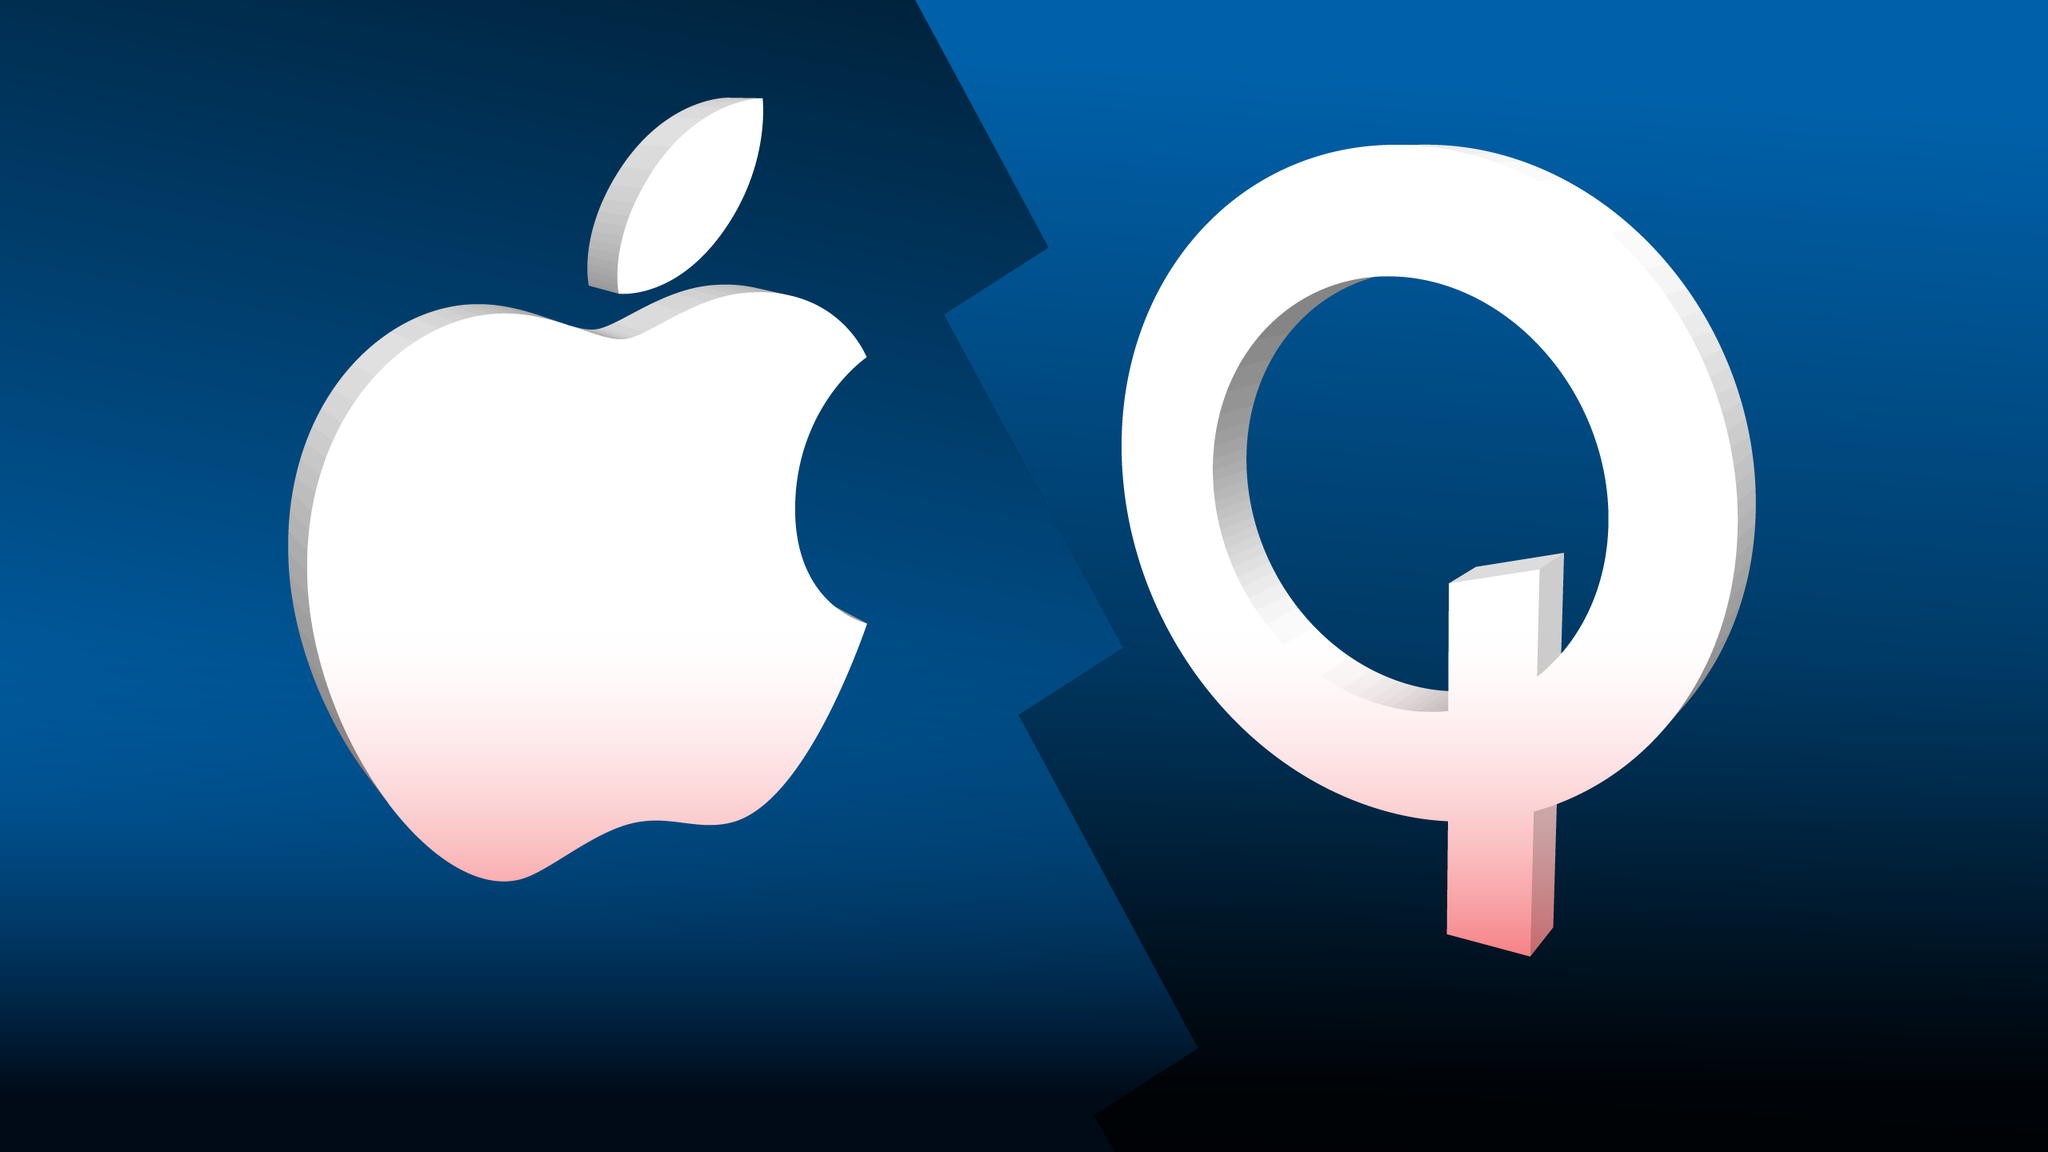 Apple stops paying royalties to Qualcomm | TechCrunch